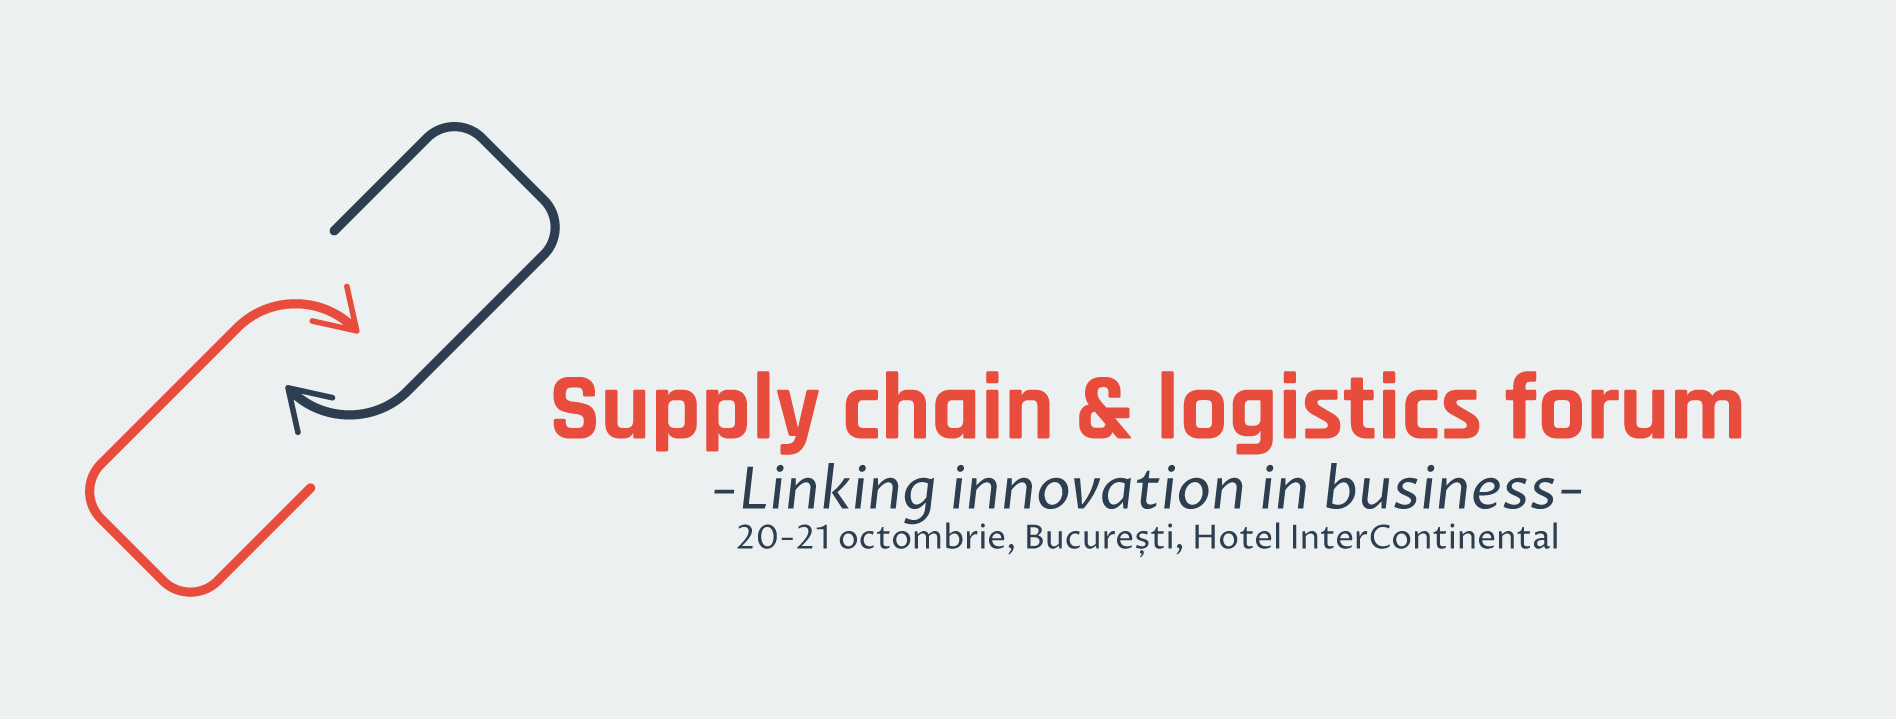 Supply Chain & Logistics Forum